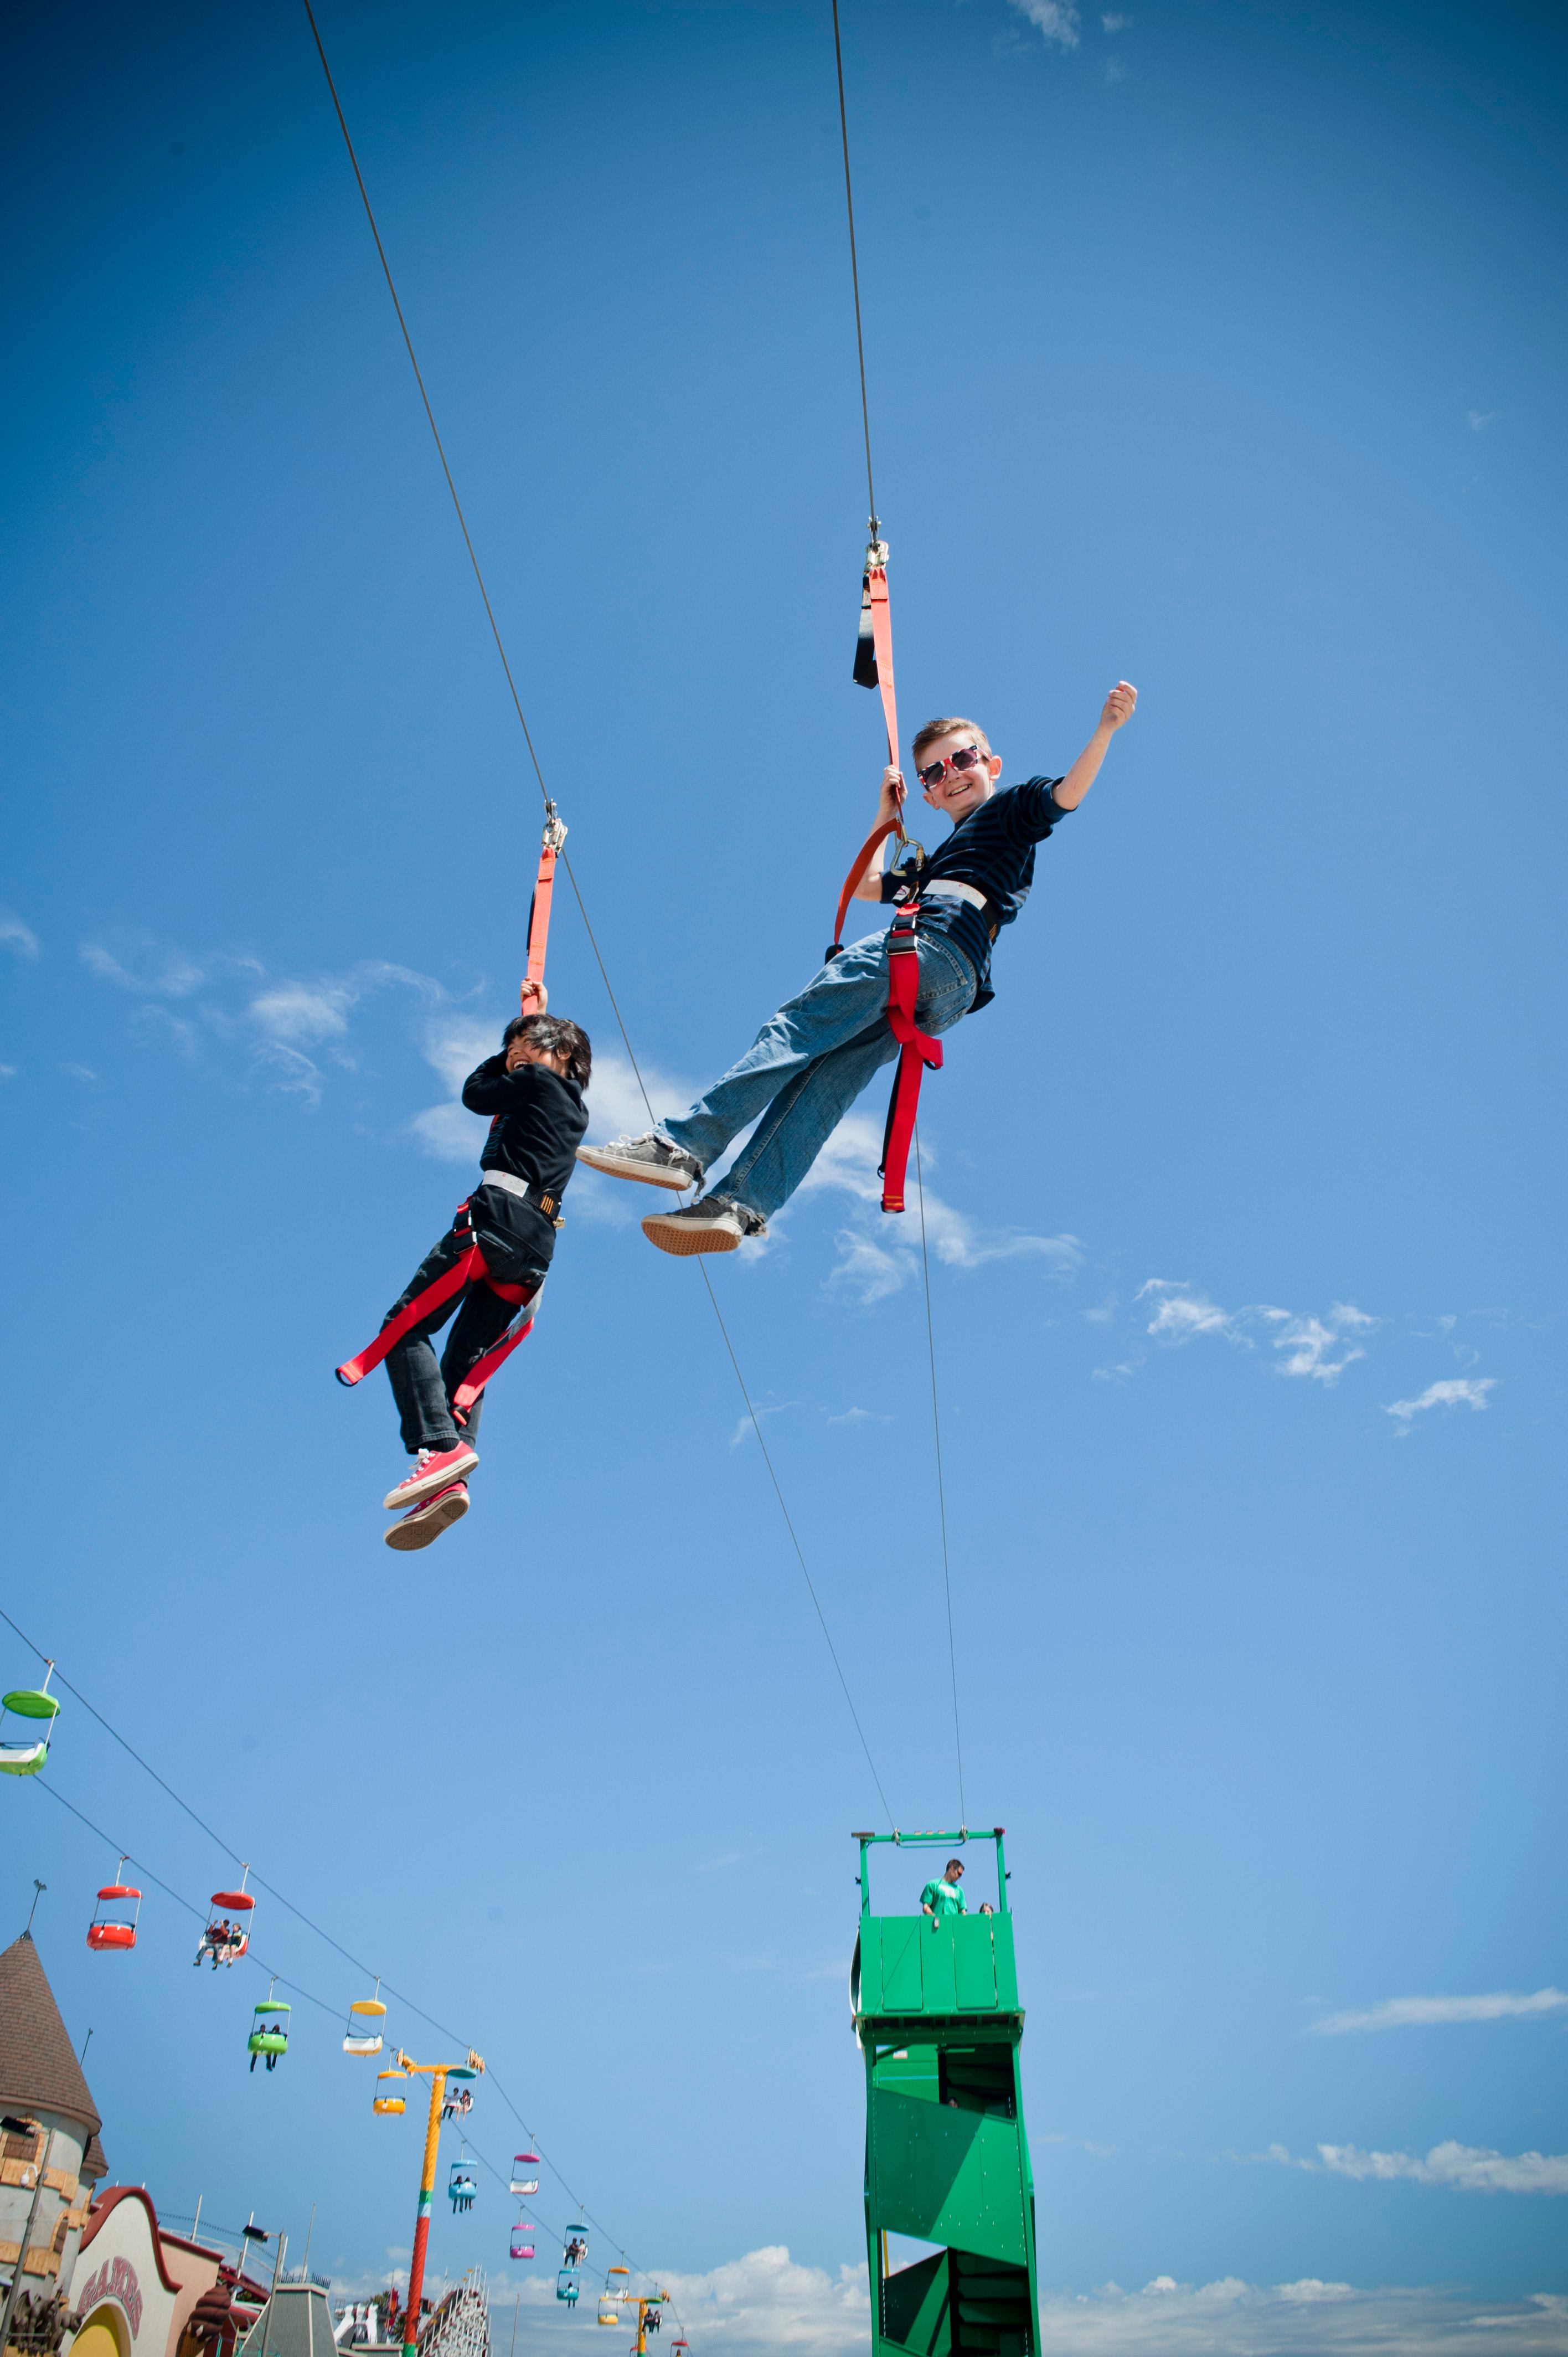 Mobile-Zipline-Extreme-Engineering-Fly-Wire-10 - Extreme Engineering